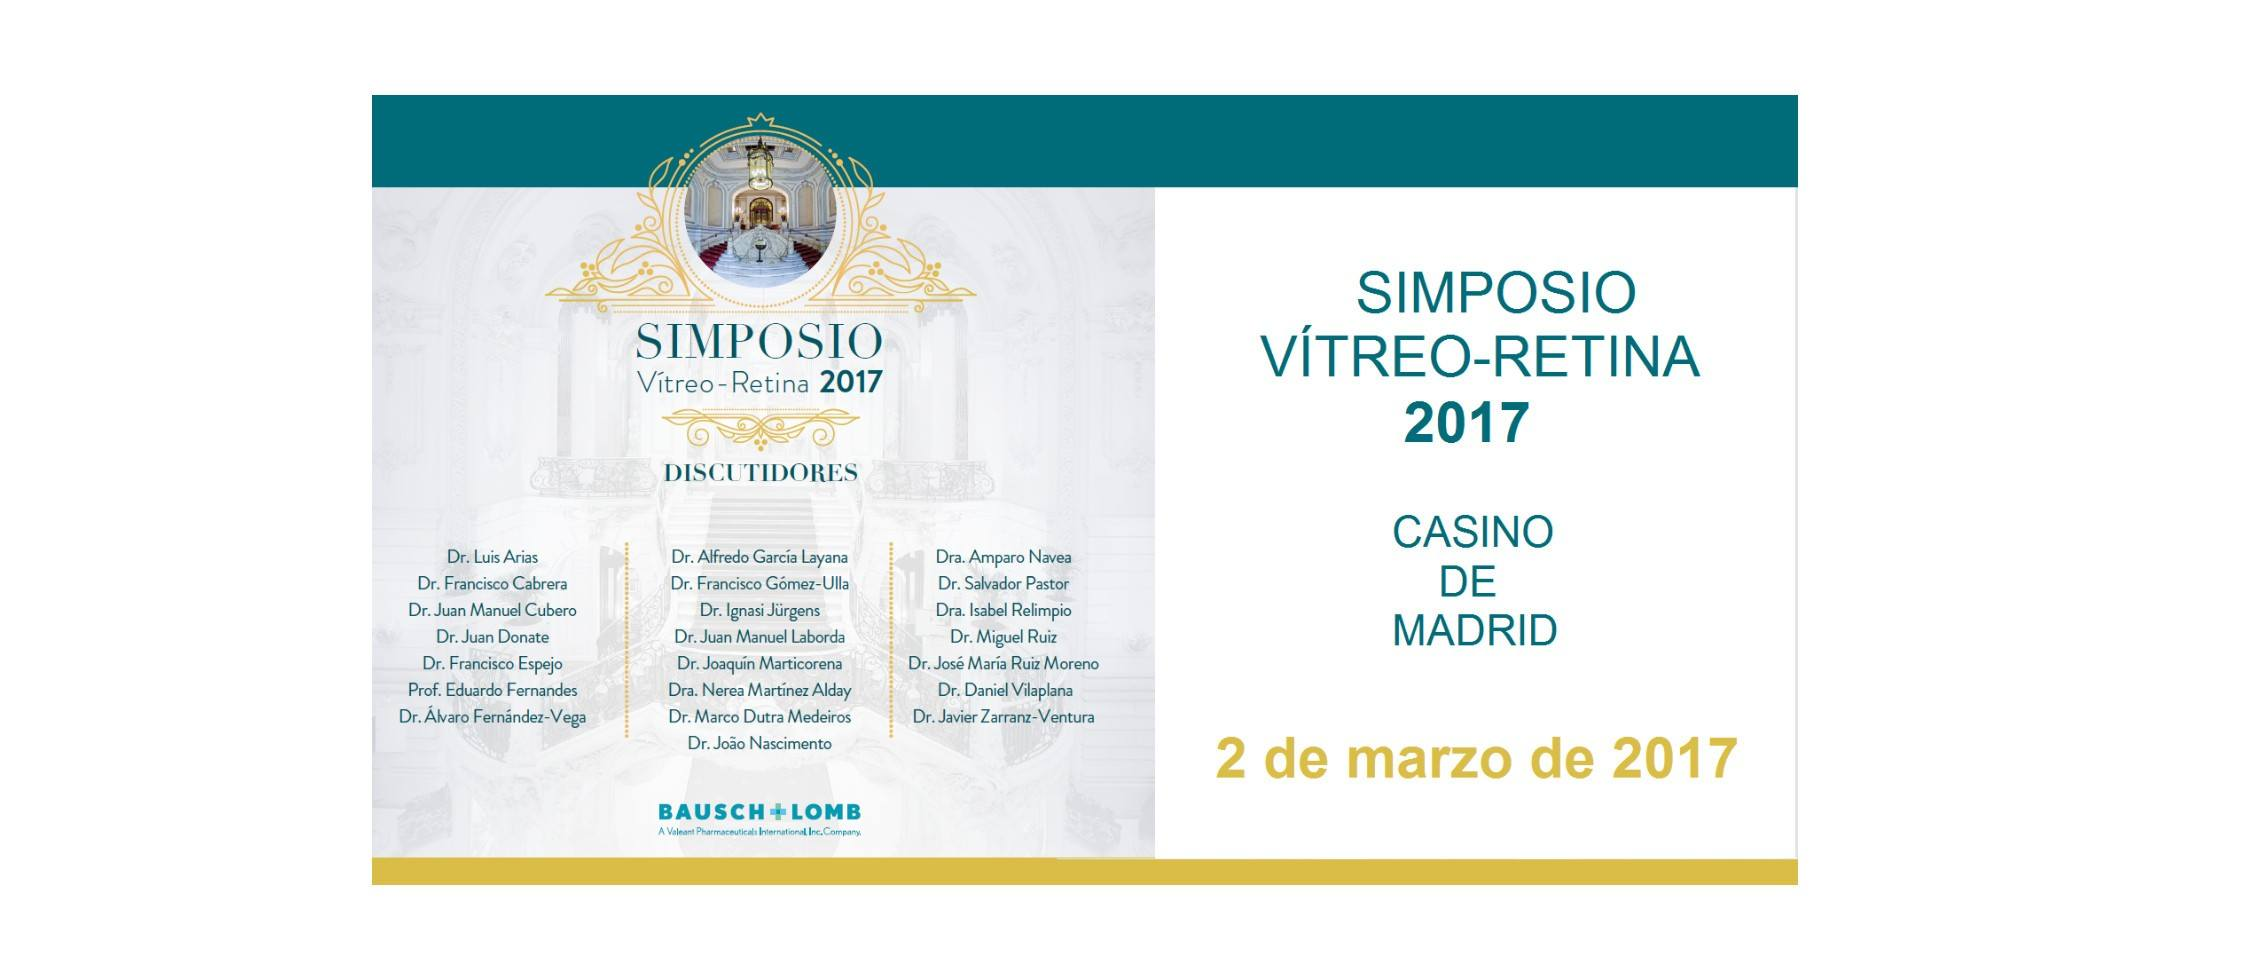 Dr. Jürgens will take part in the 2017 Vitreous-Retina Symposium